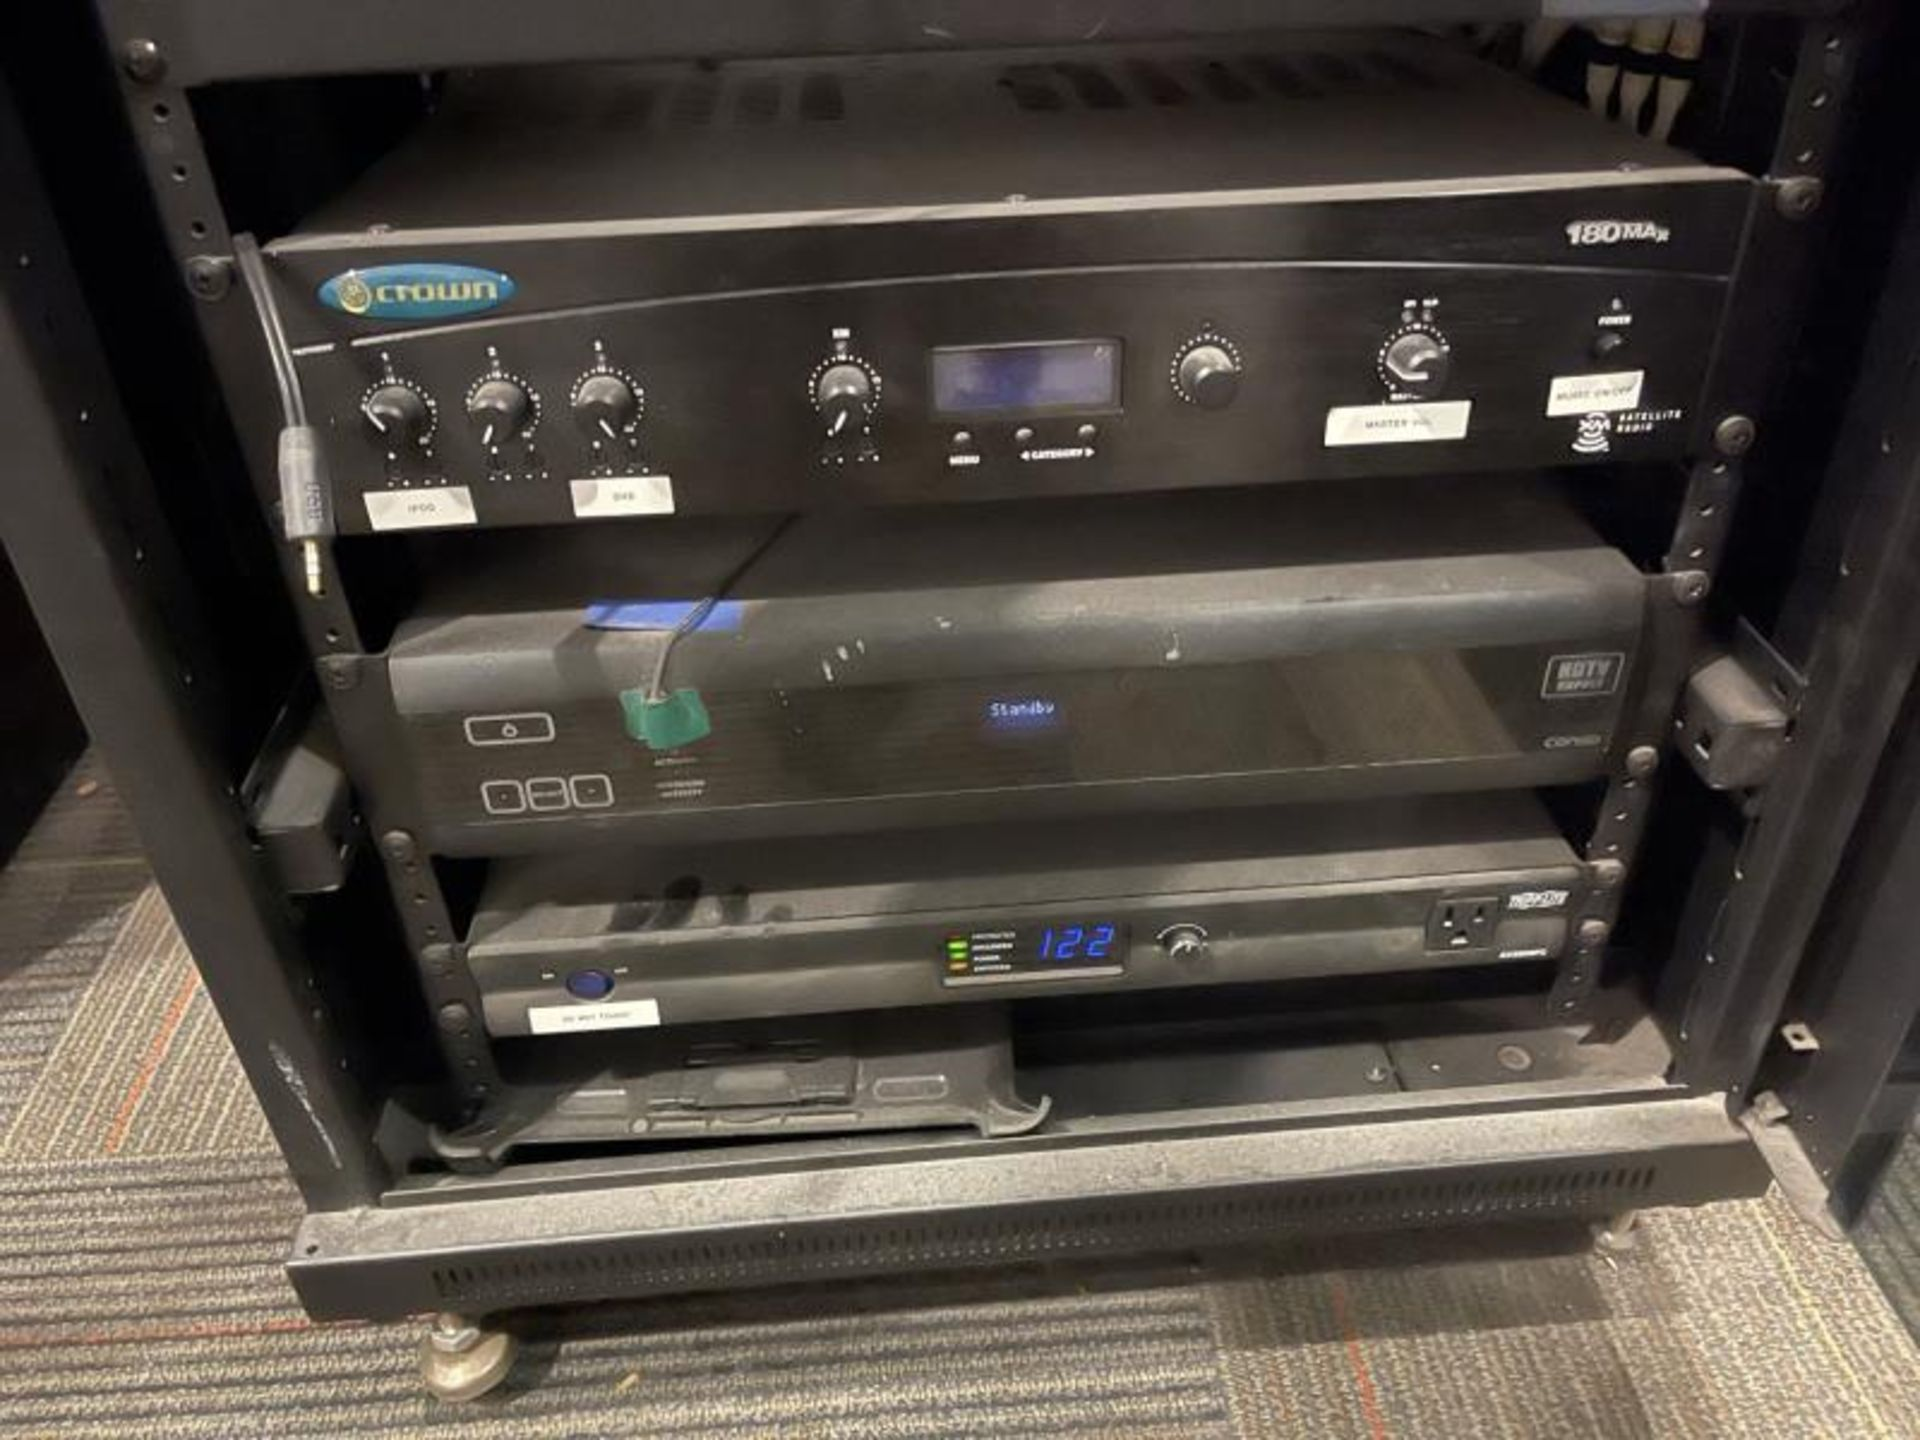 Omni Design Glass Door Electronics Cabinet with Crown 180 Max with Satellite Radio, Congo HDTV Suppl - Image 4 of 4